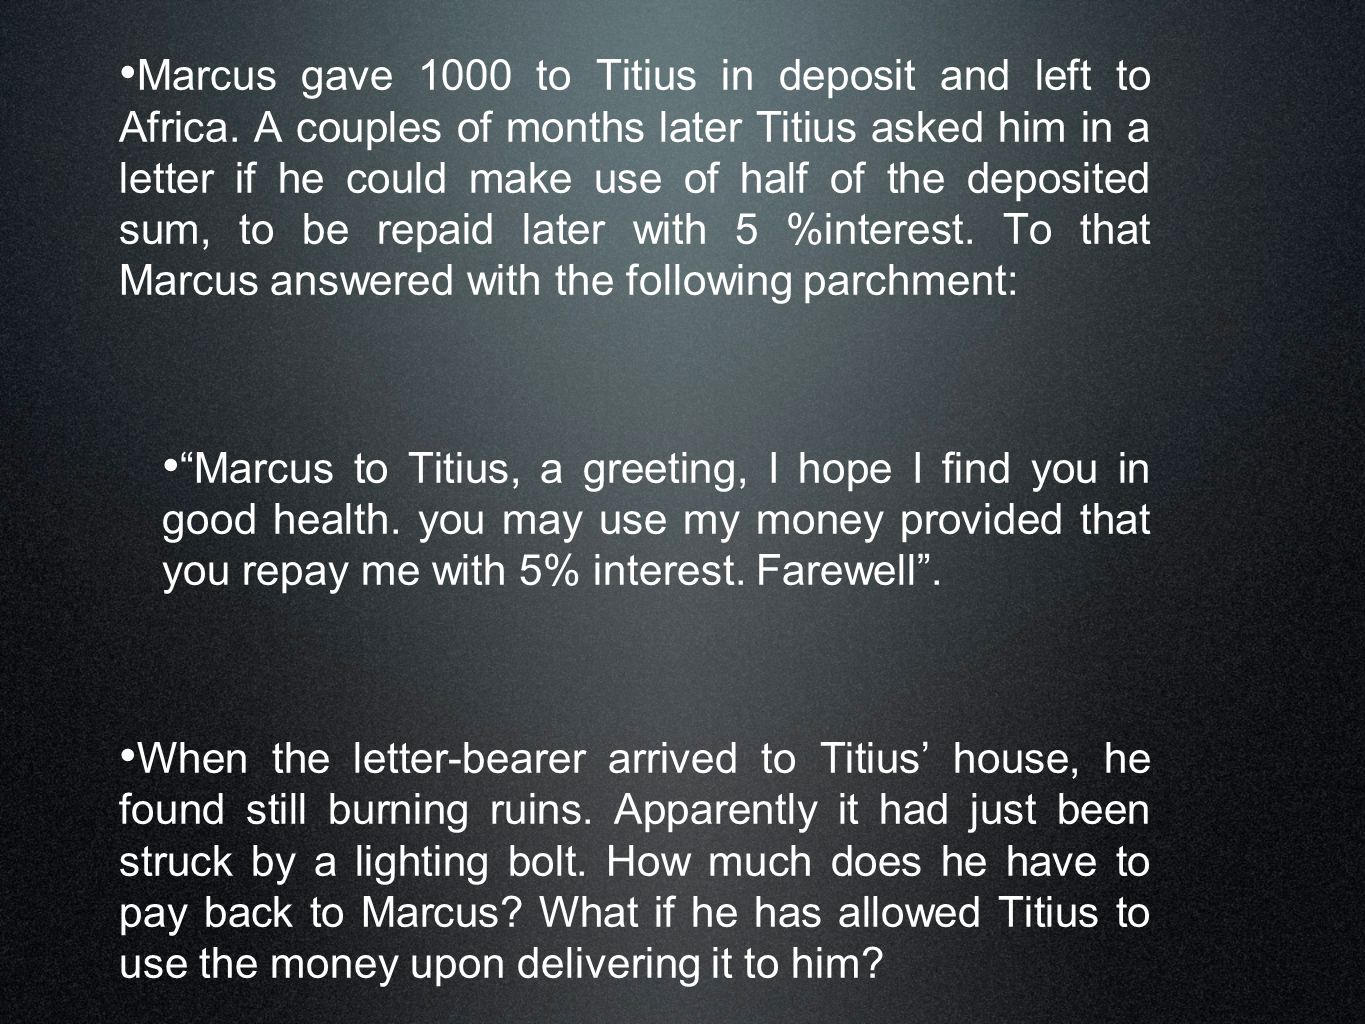 Marcus gave 1000 to Titius in deposit and left to Africa. A couples of months later Titius asked him in a letter if he could make use of half of the d